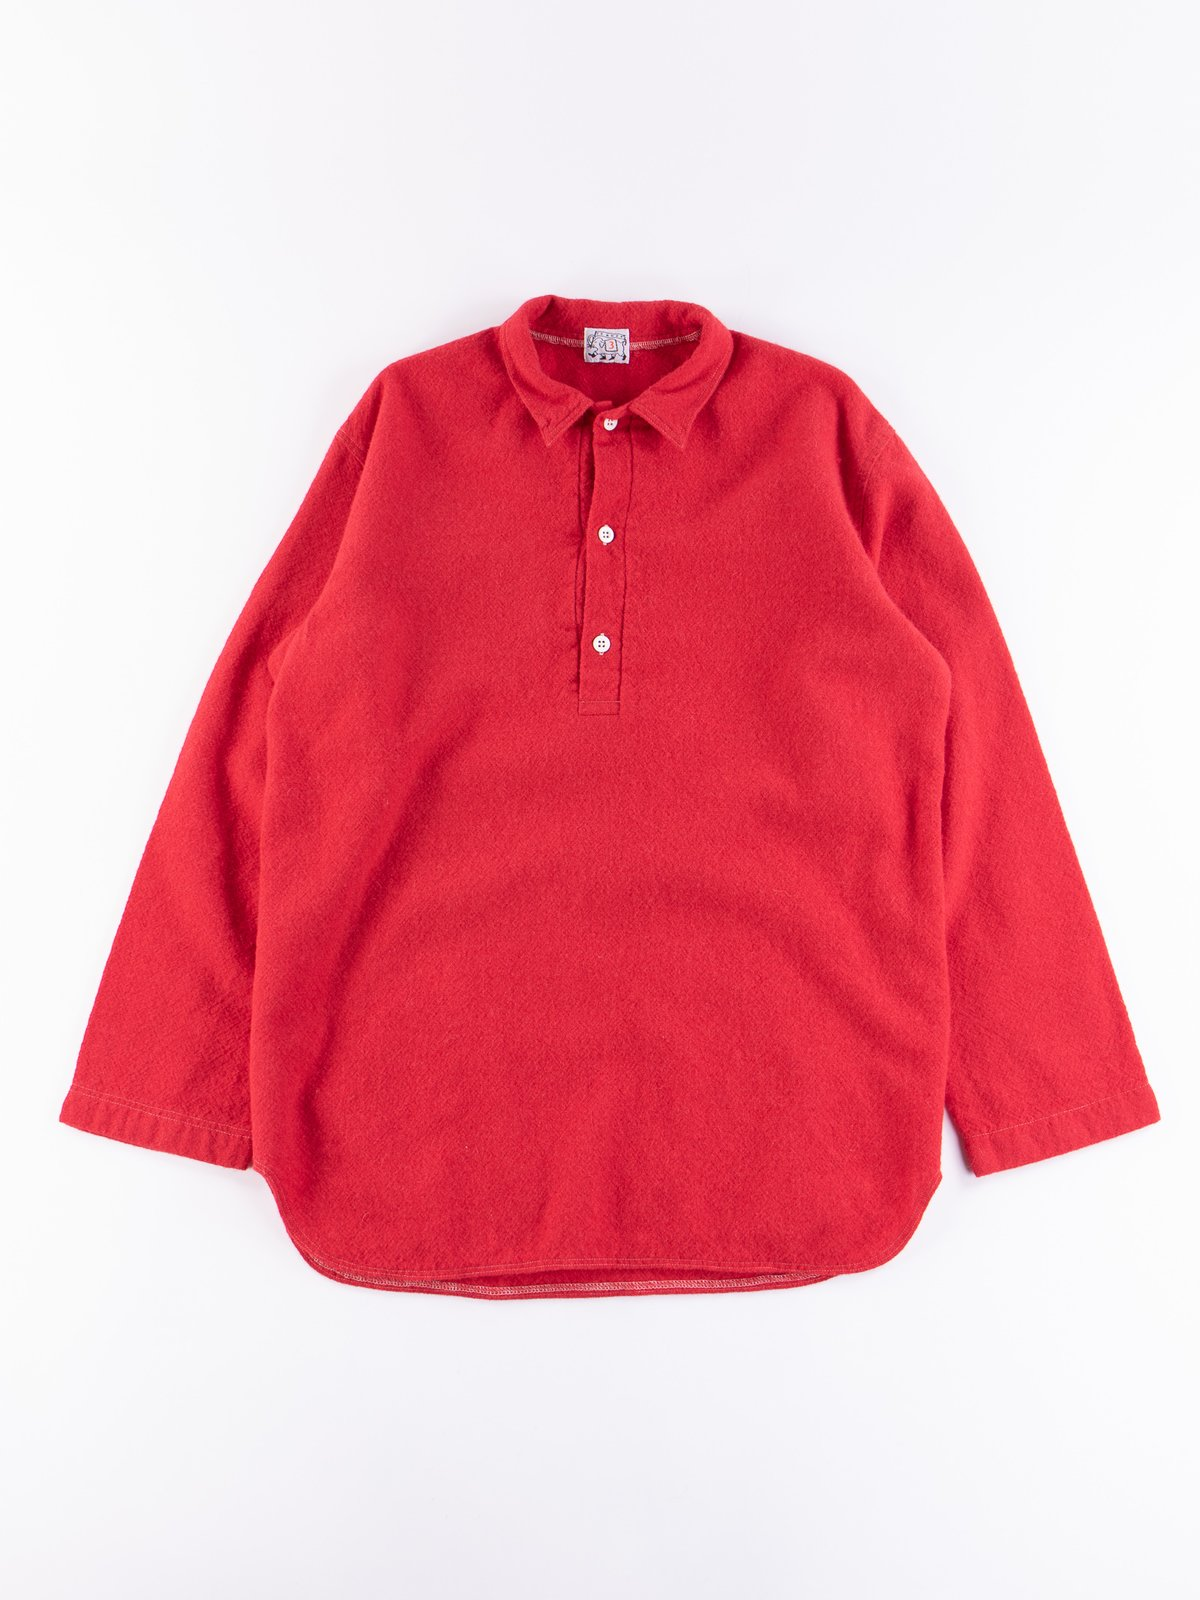 Scarlet Weavers Stock Pullover Tail Shirt - Image 1